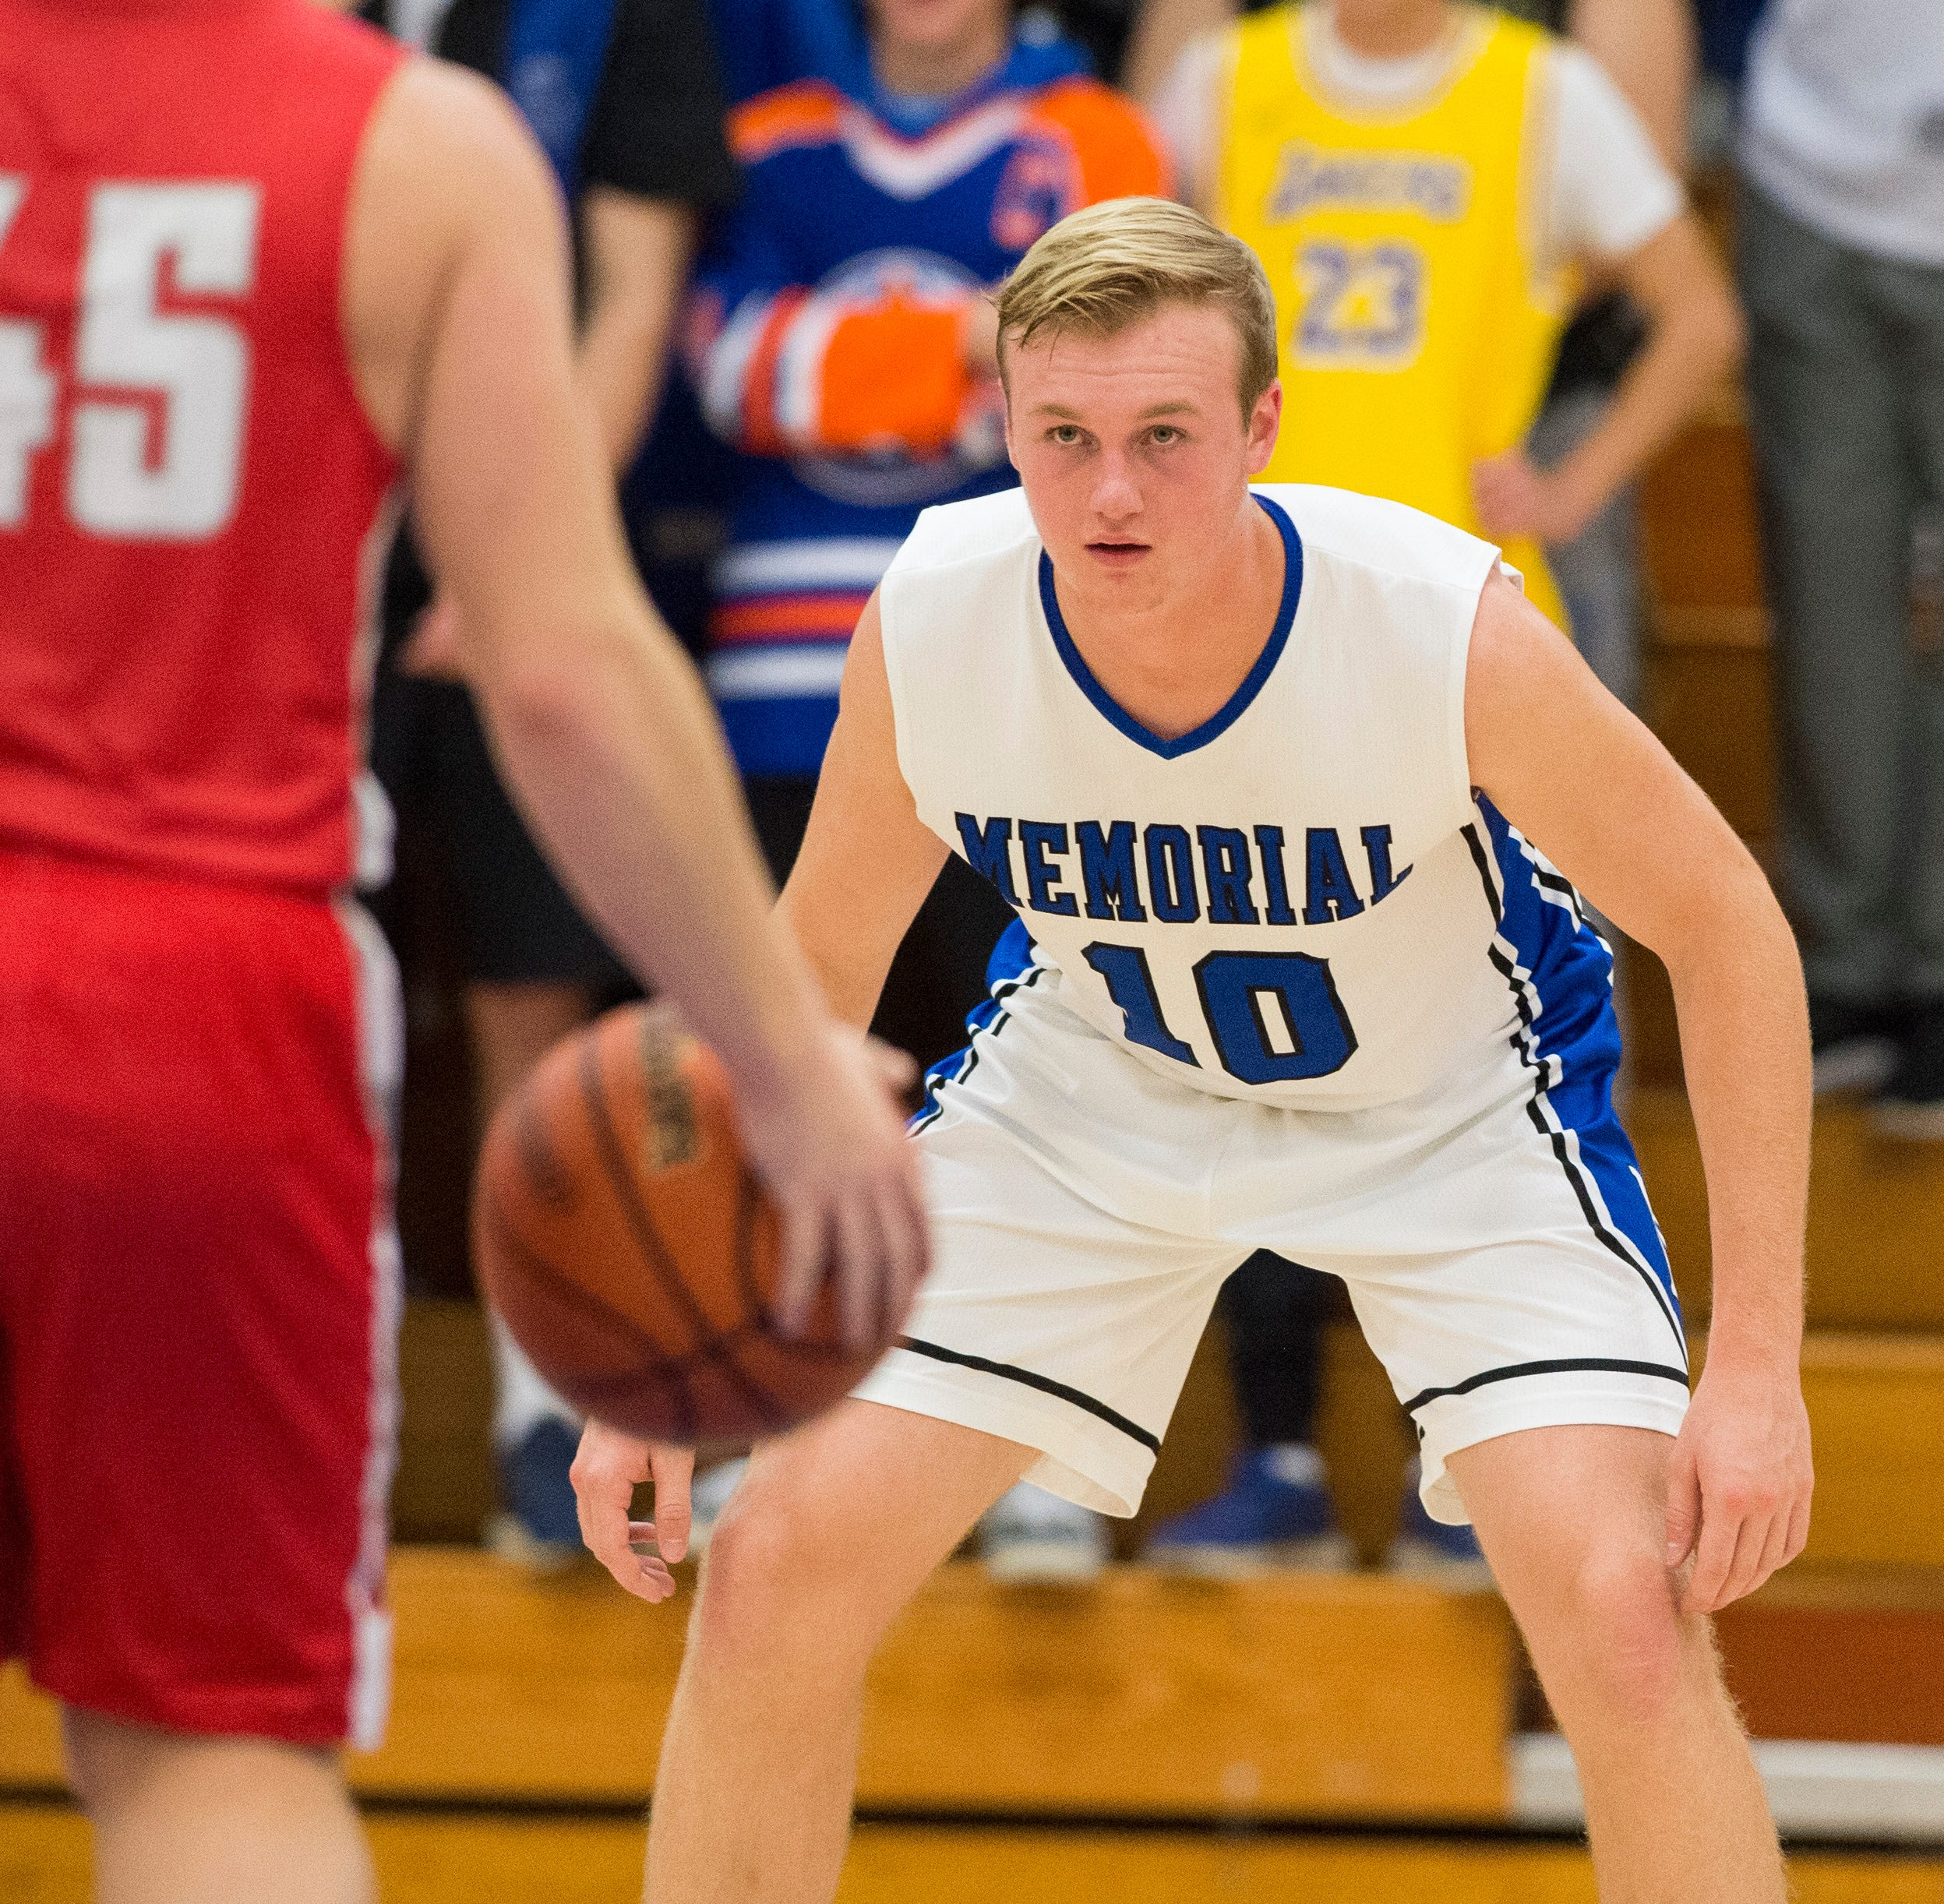 Games to watch in SW Indiana high school basketball before Christmas